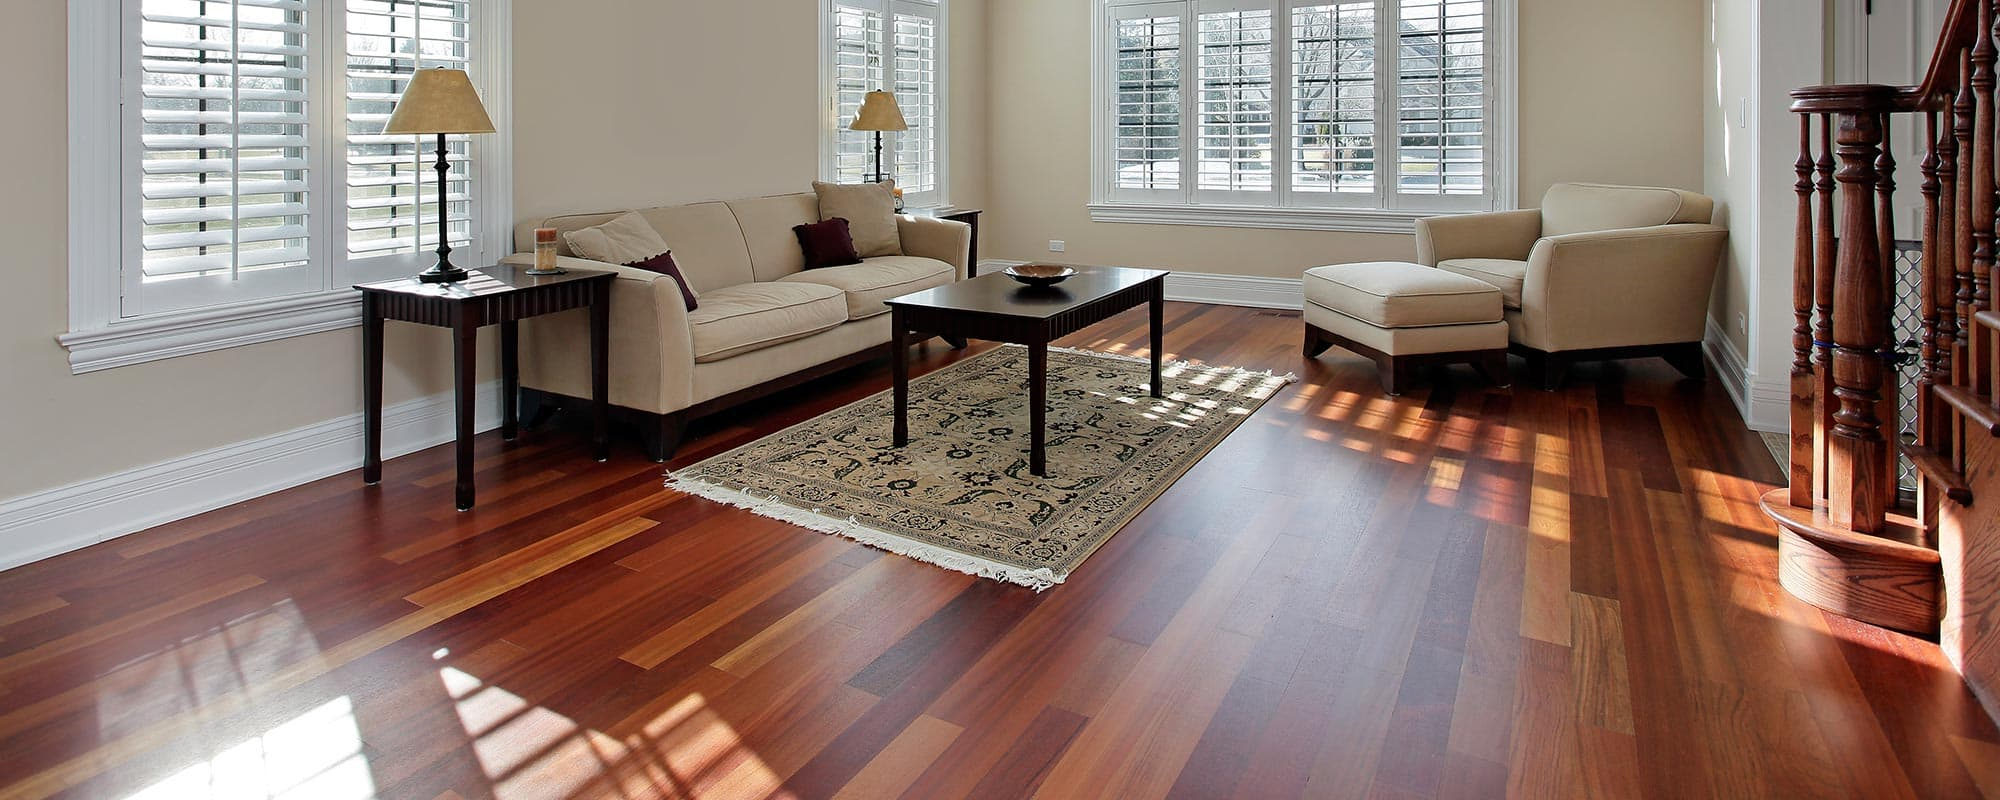 american walnut floors